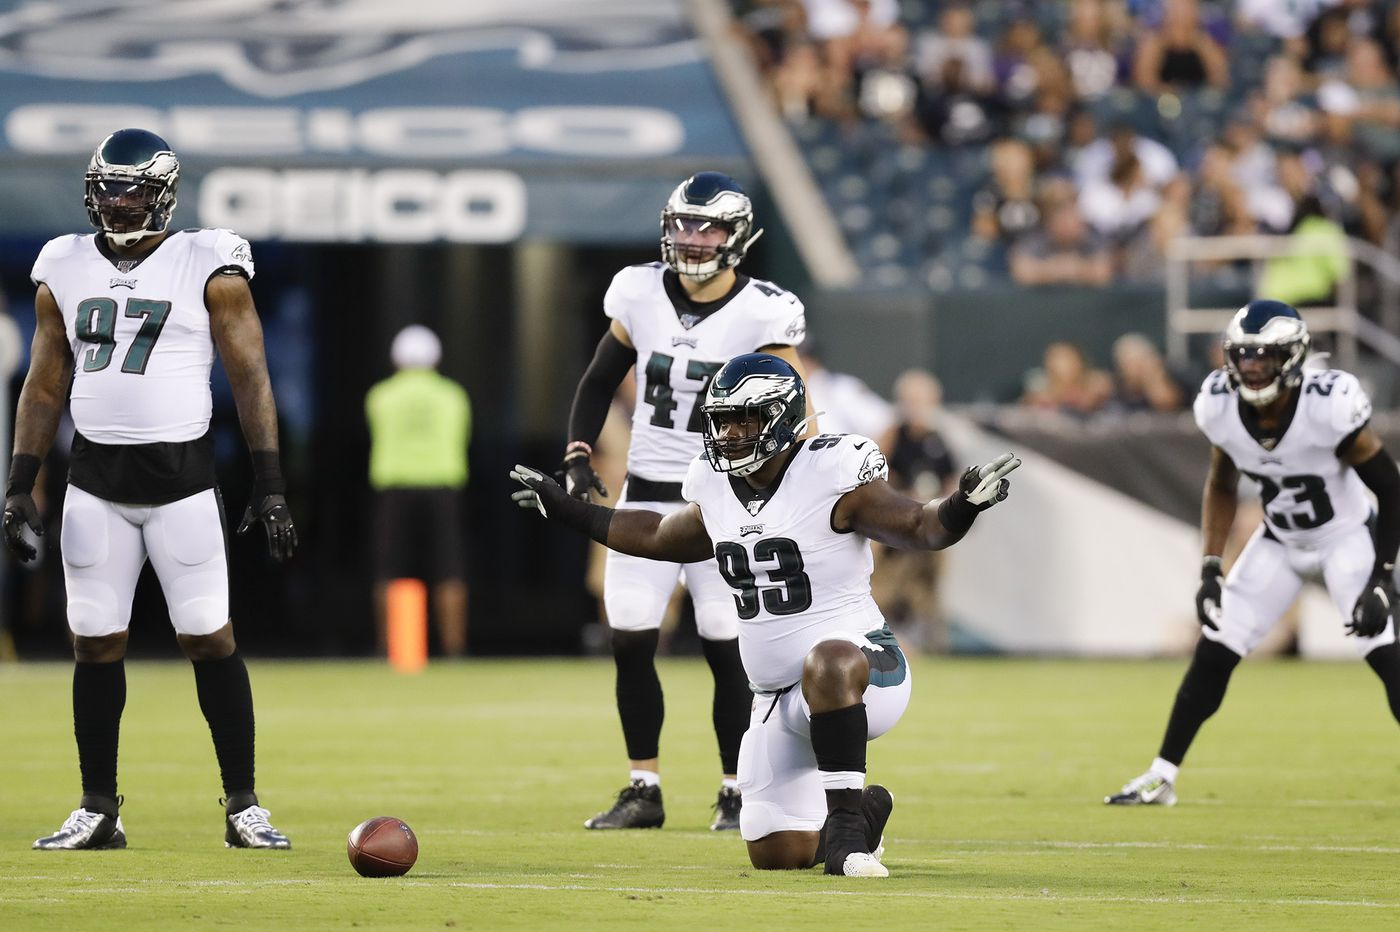 Timmy Jernigan and Eagles' defensive line depth will be tested, with Malik Jackson gone; Akeem Spence signed